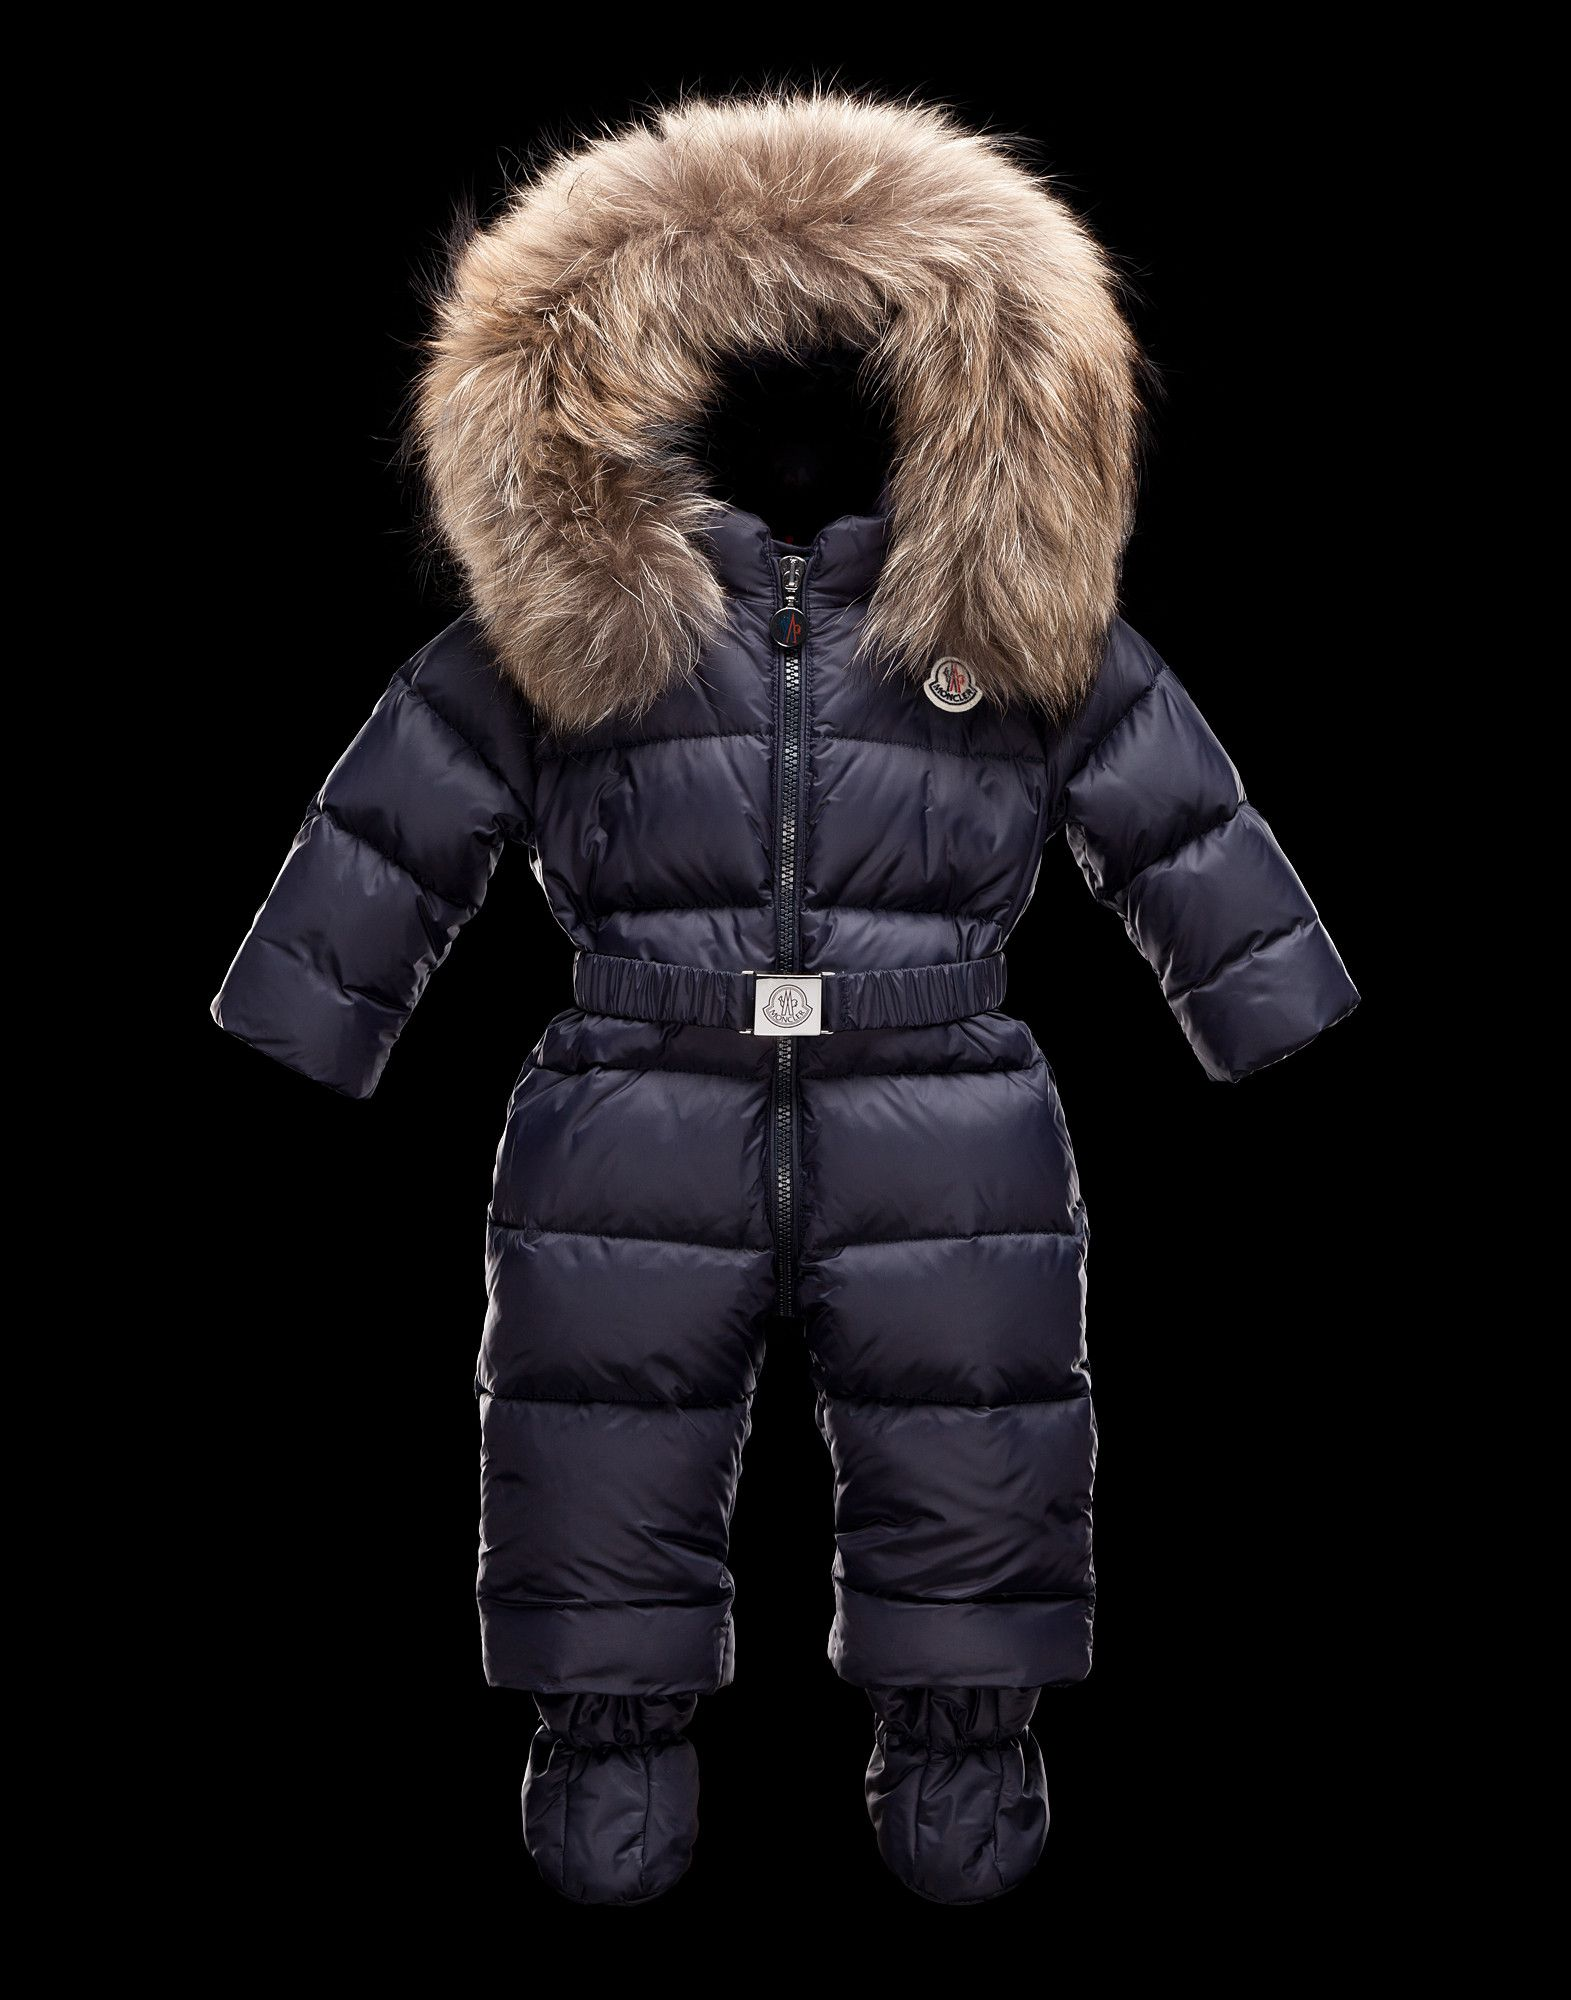 8ee8125ba MONCLER ENFANT - Autumn Winter 12-13 - OUTERWEAR - All in one ...